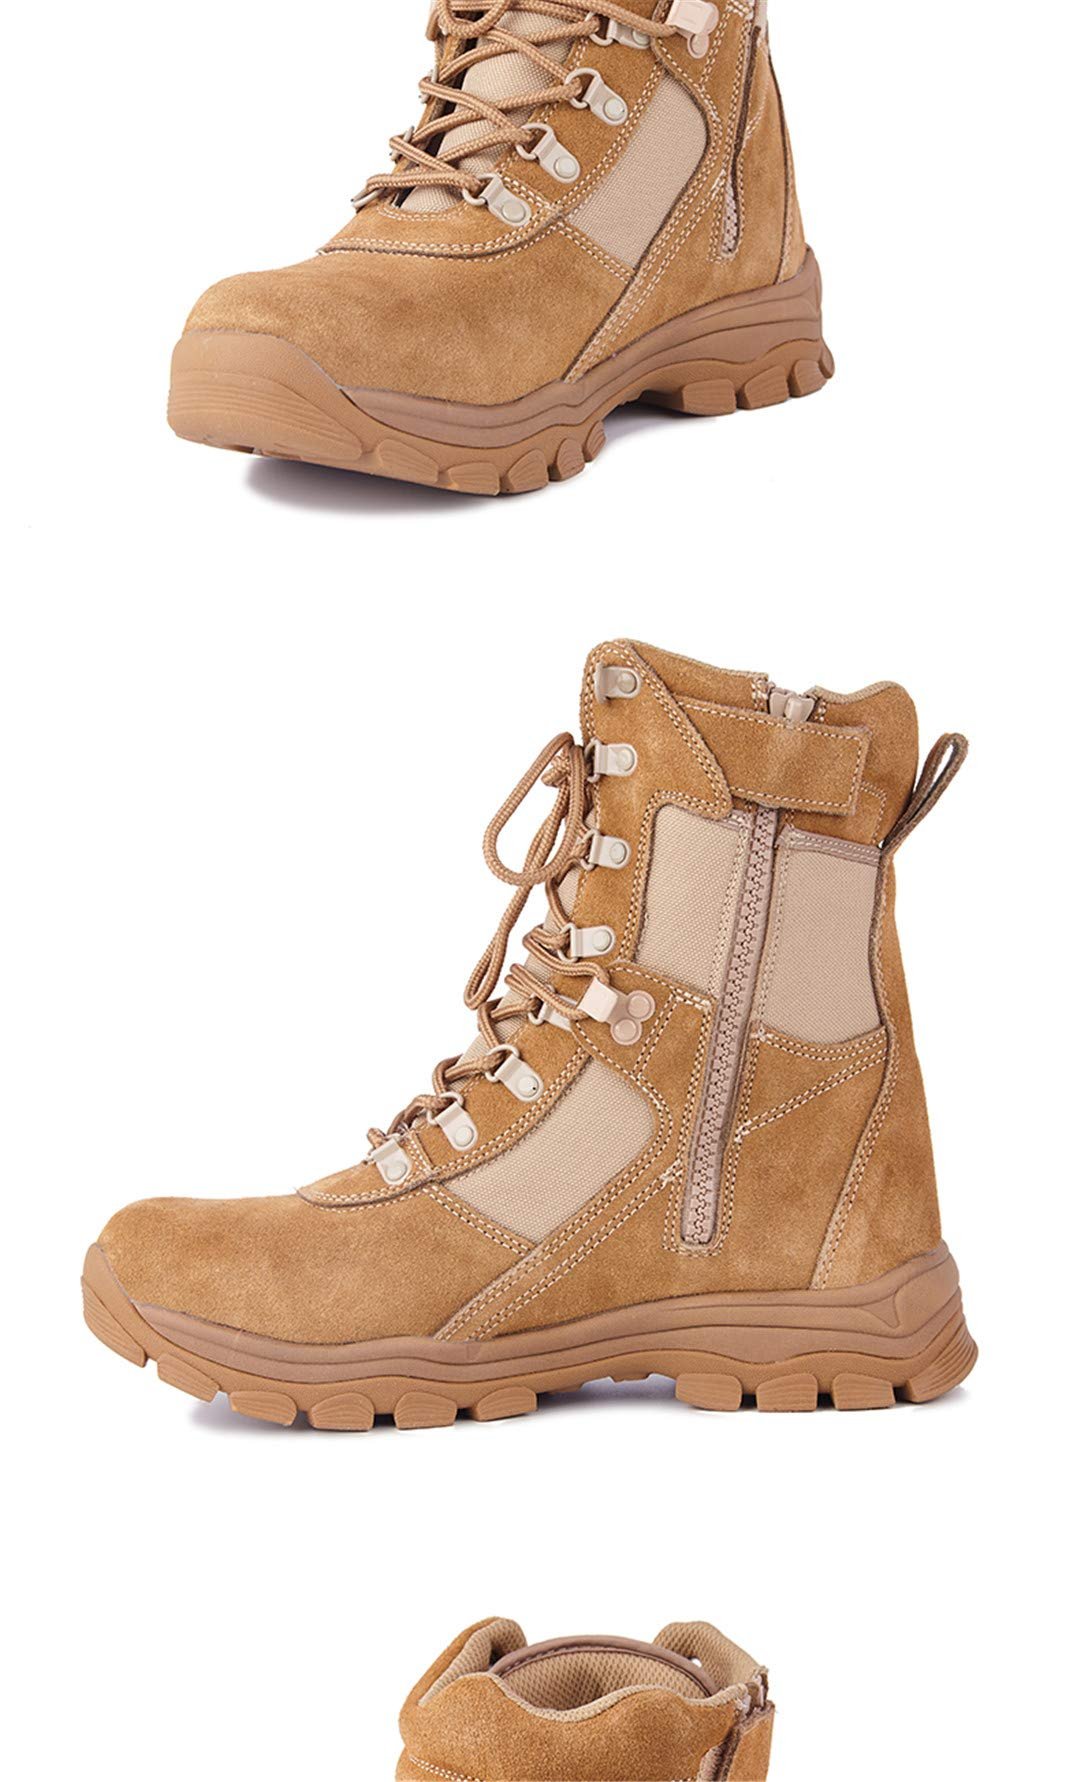 High Band Zipper Boots Male Air-Permeable Tactical Boots Army Boots Mountaineering Boots Yellow 7 by CNSDLK